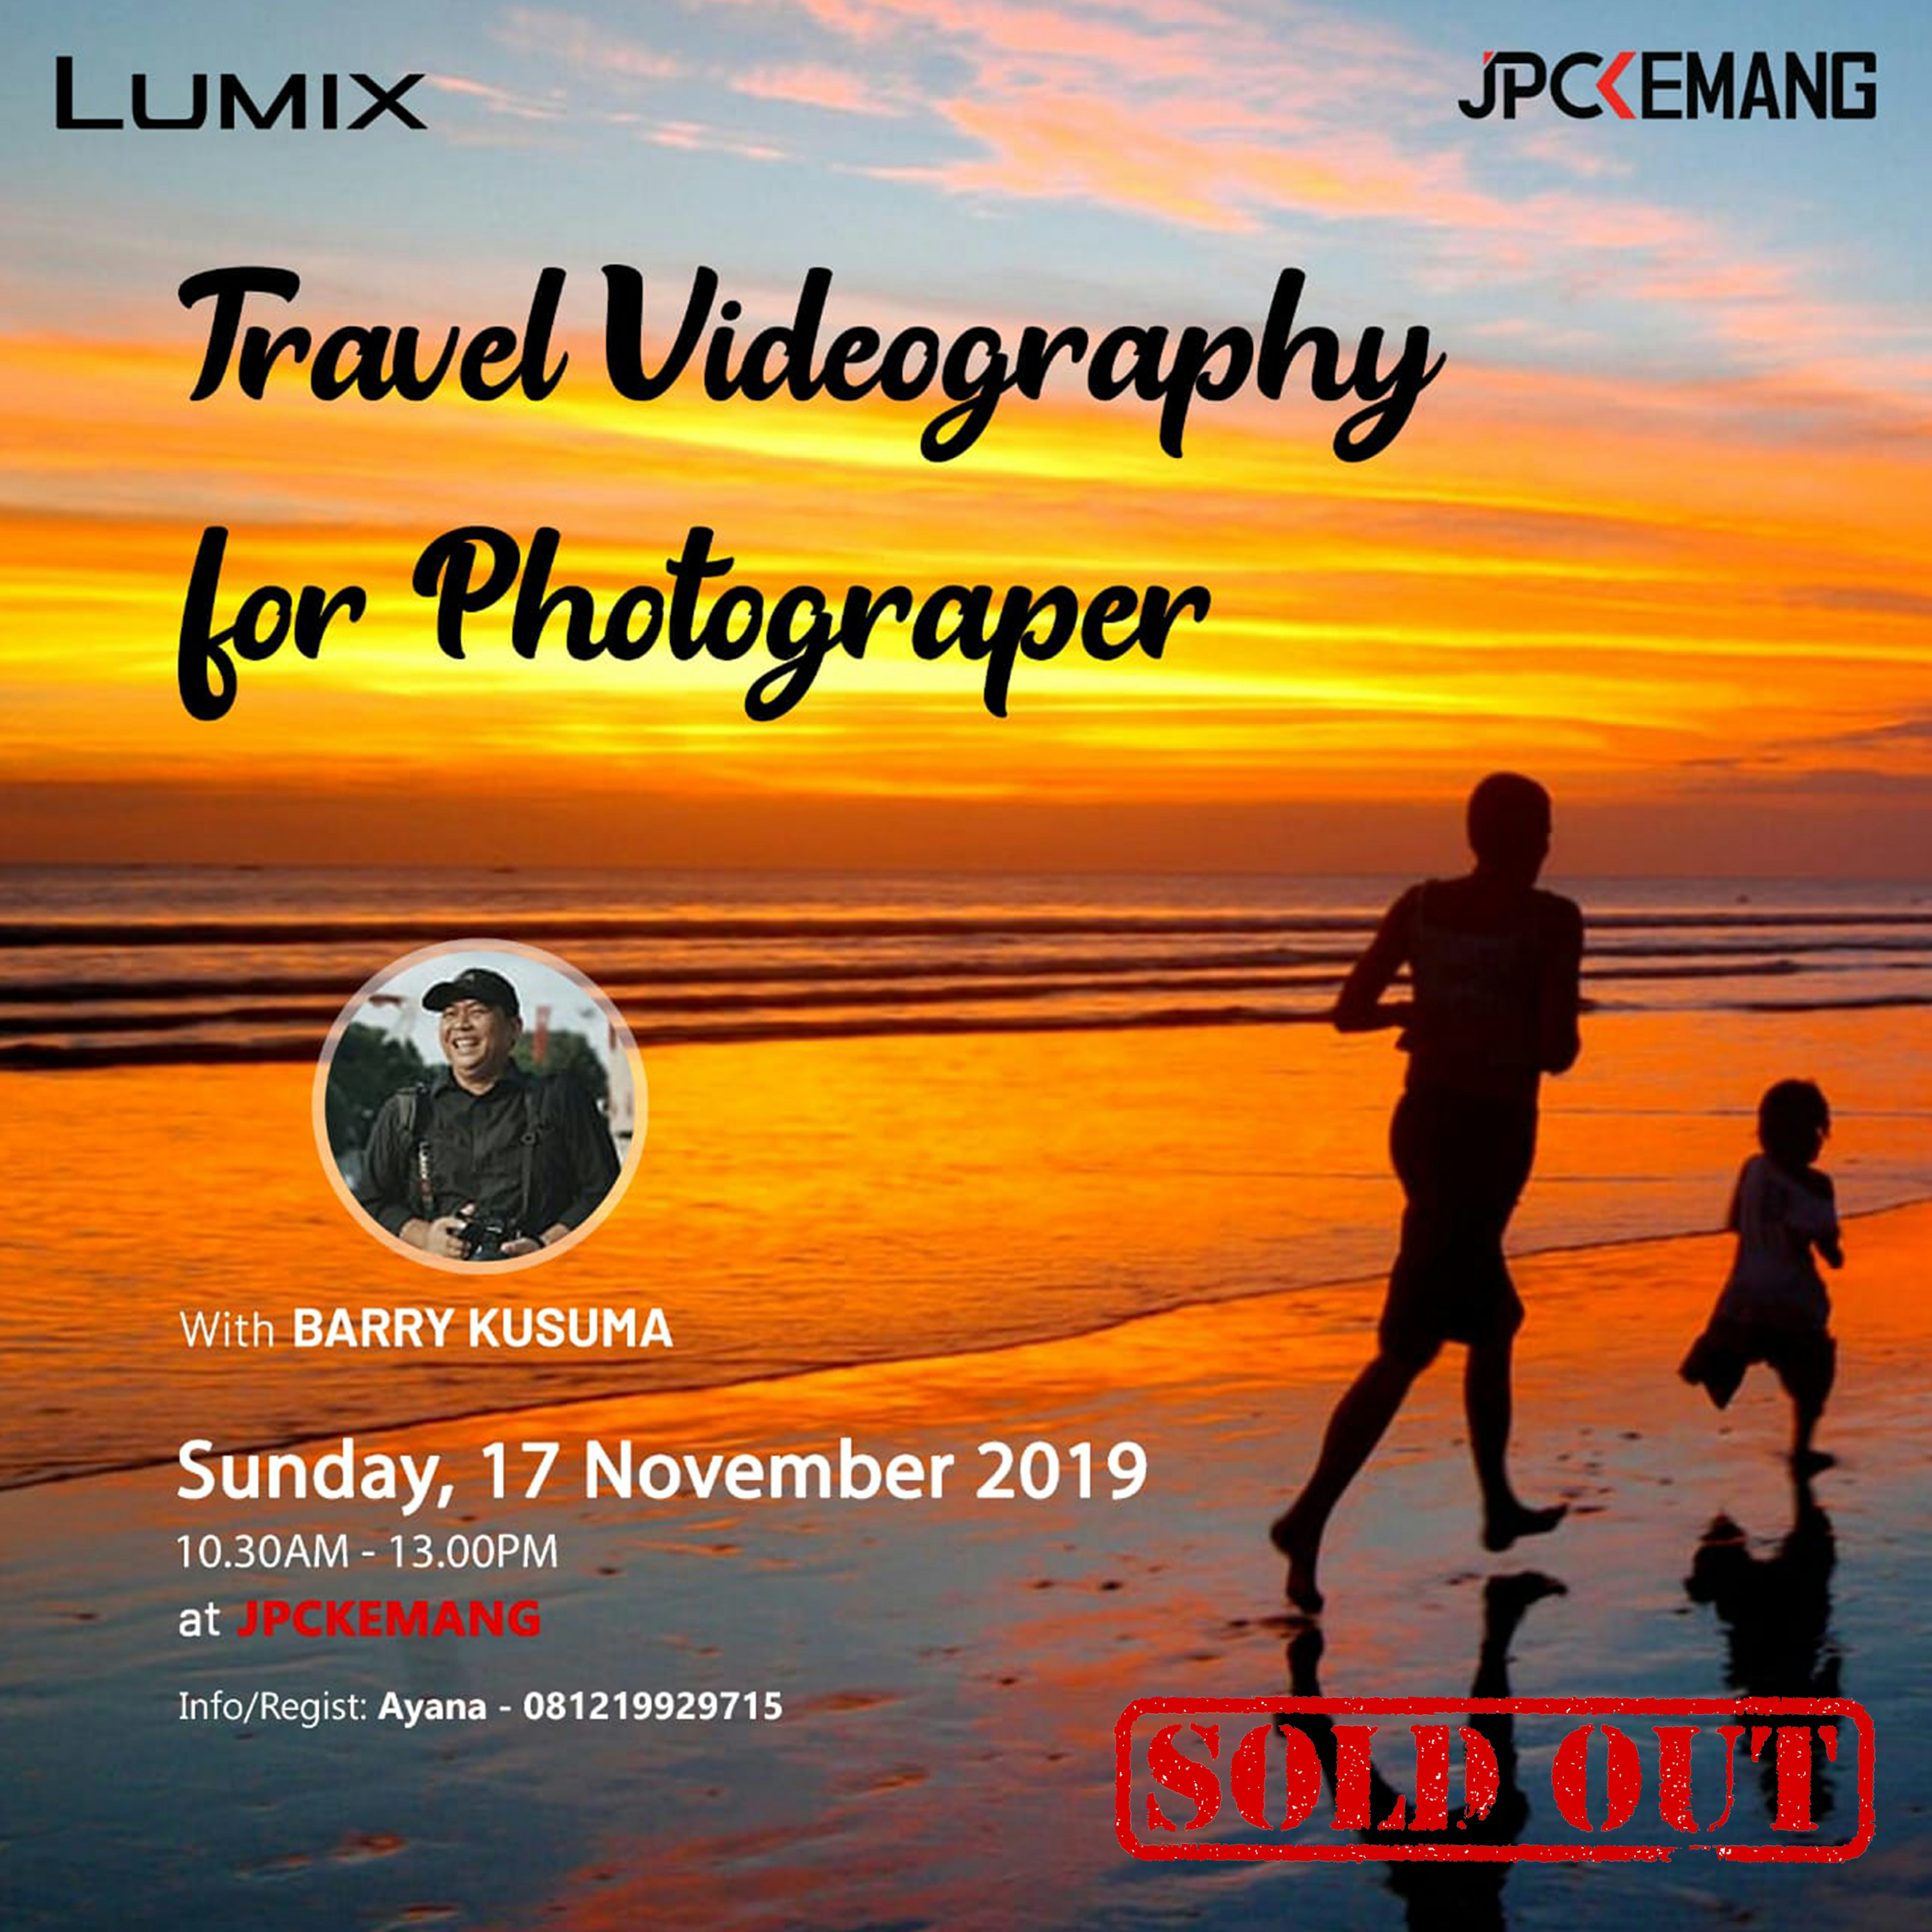 Travel Videography for Photographer